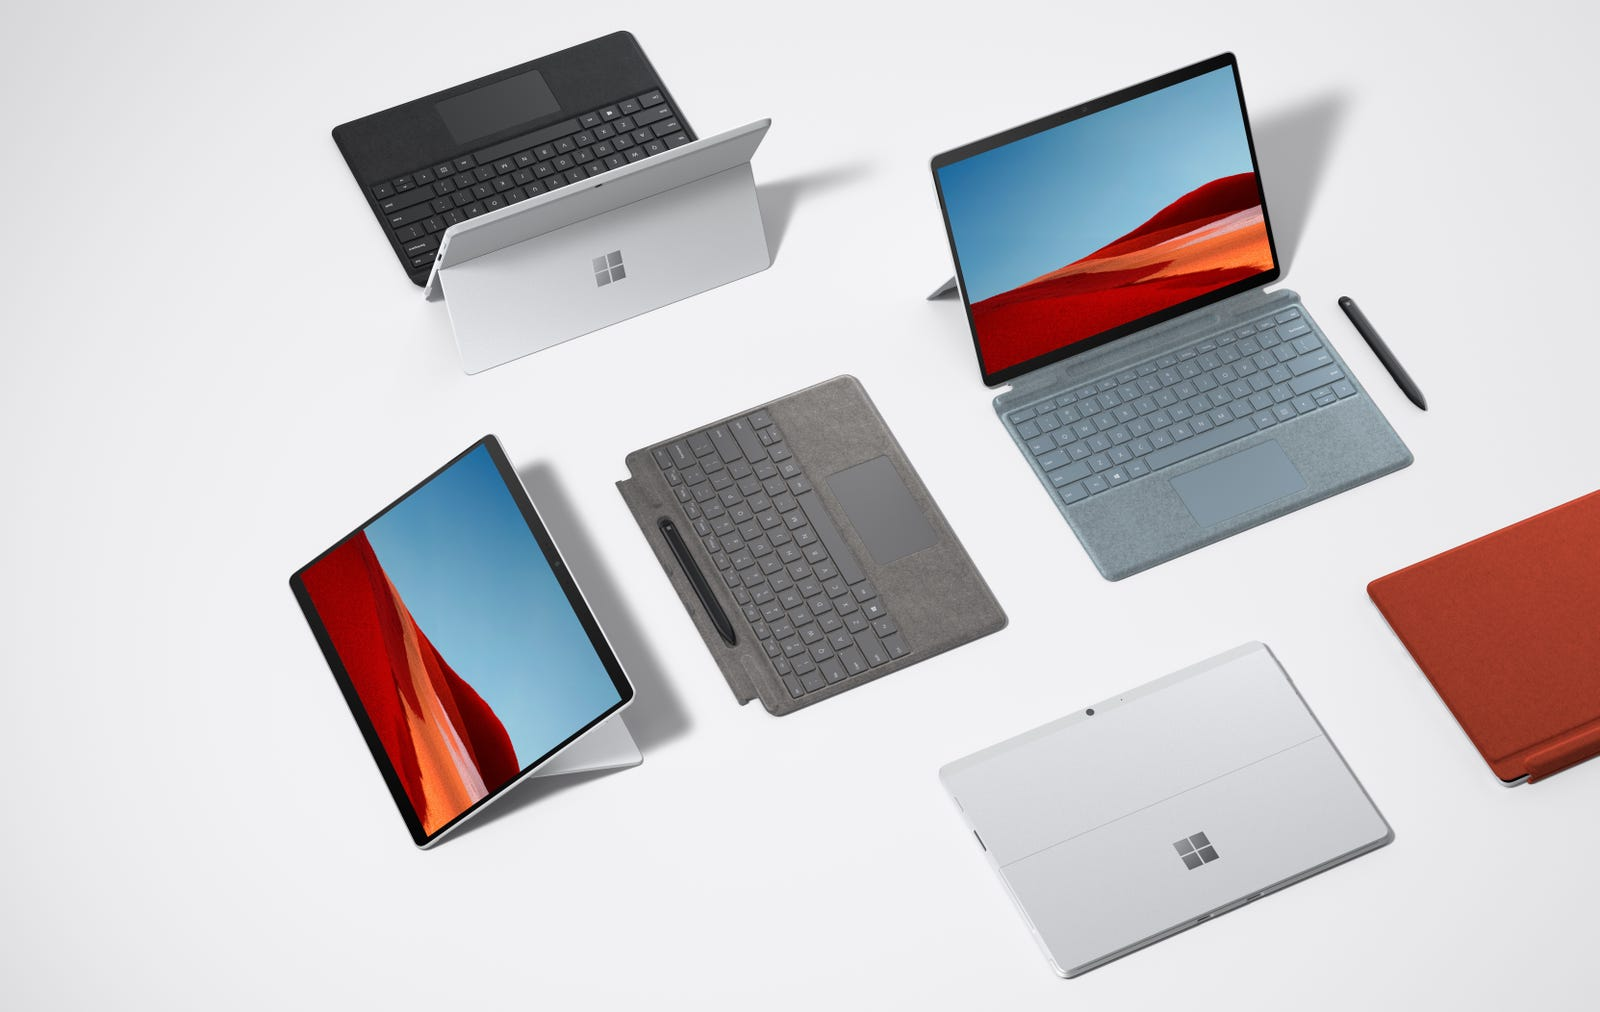 Click through for more official images of the refreshed Surface Pro X.